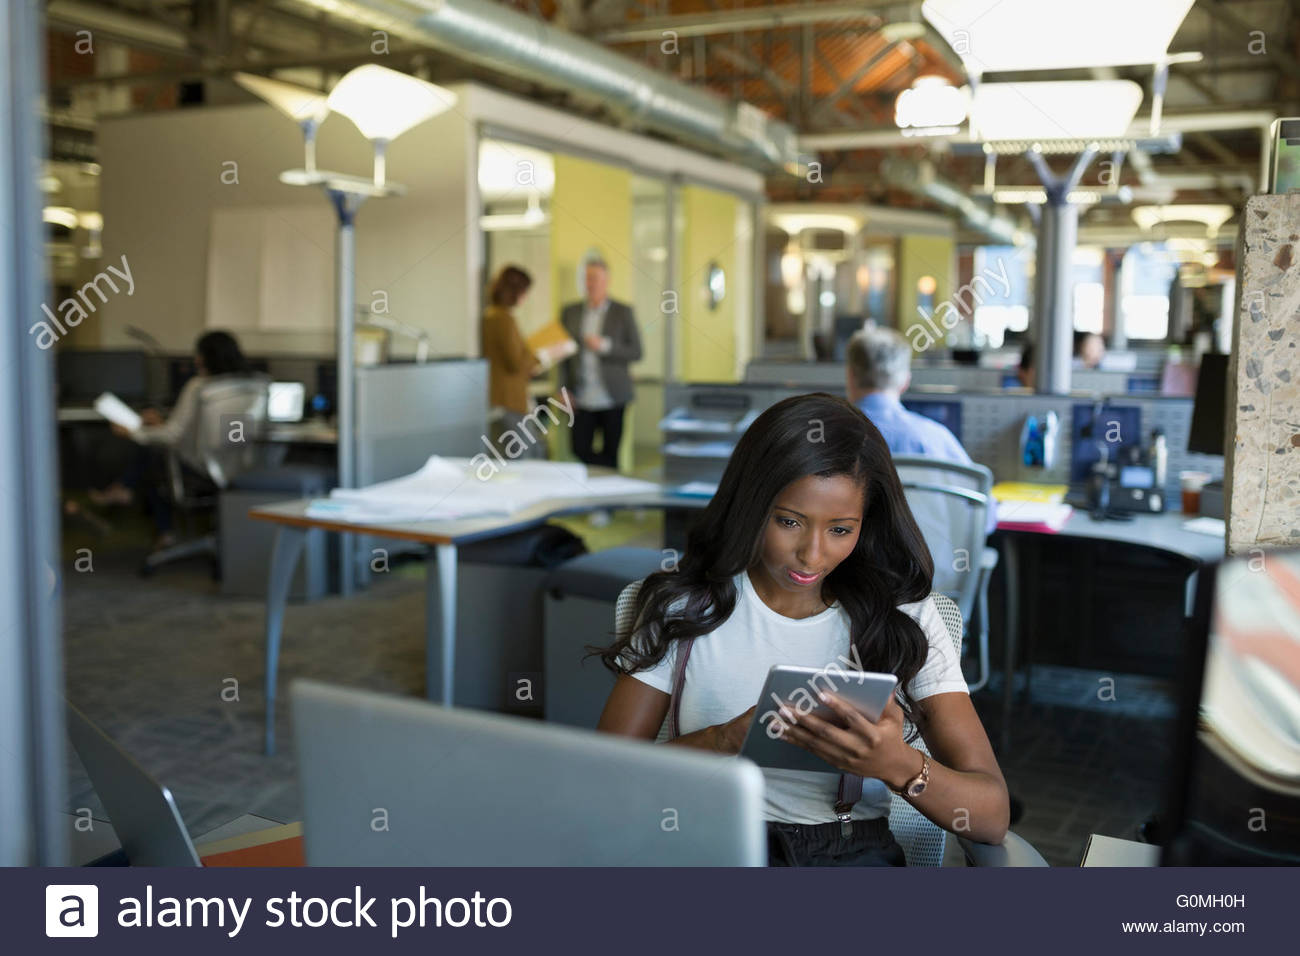 Businesswoman using digital tablet in office Photo Stock